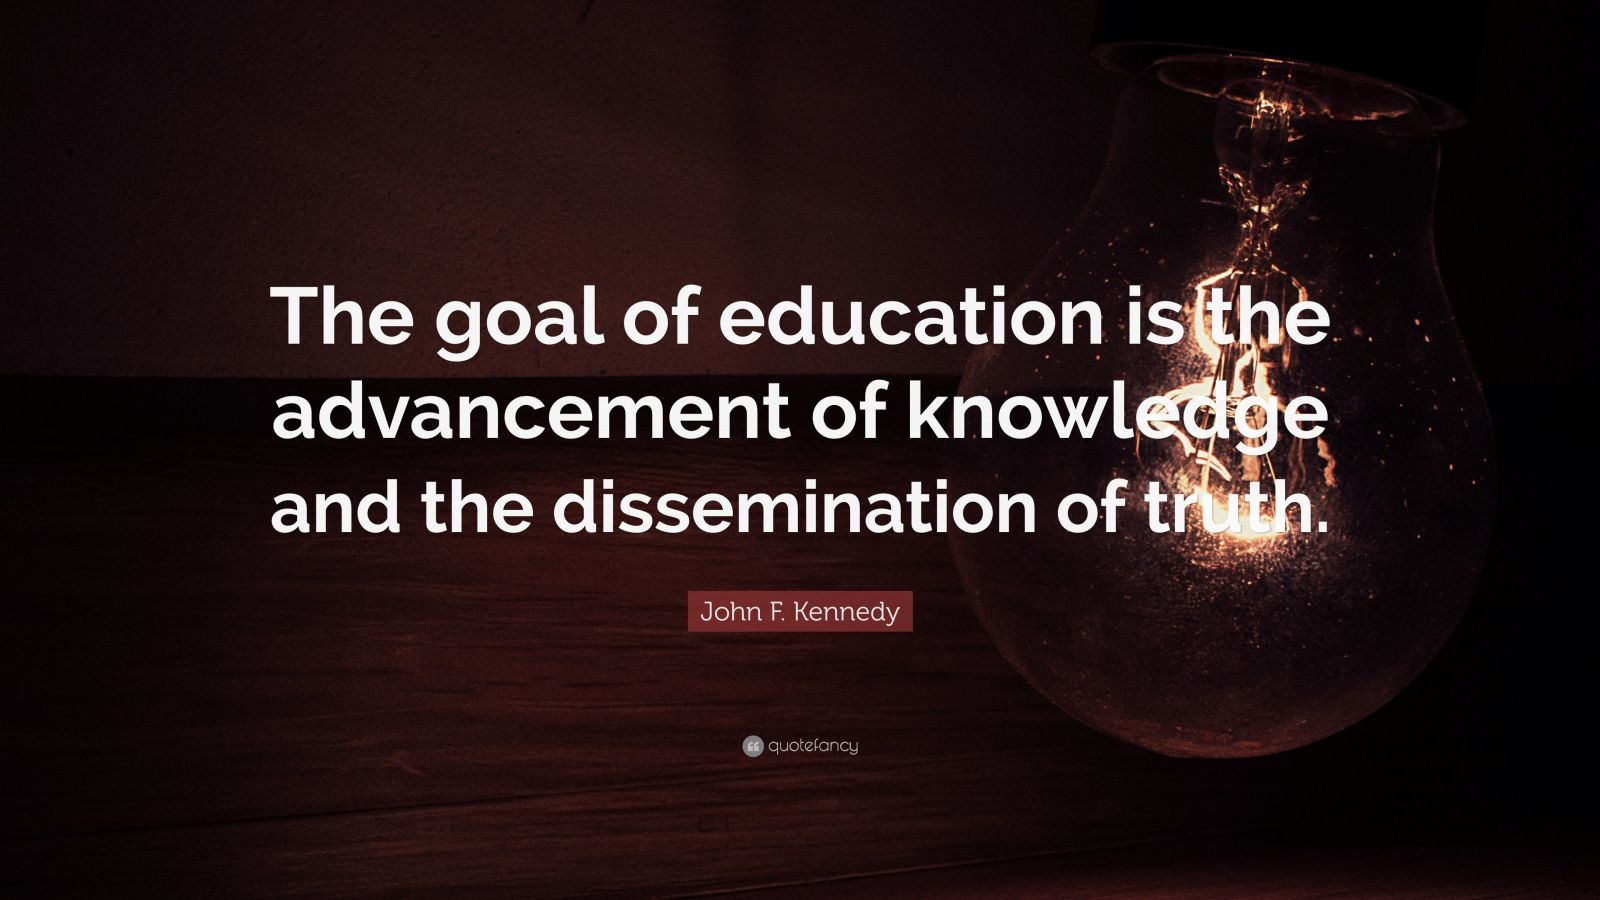 """John F. Kennedy Quote: """"The goal of education is the advancement of knowledge and the dissemination of truth."""""""